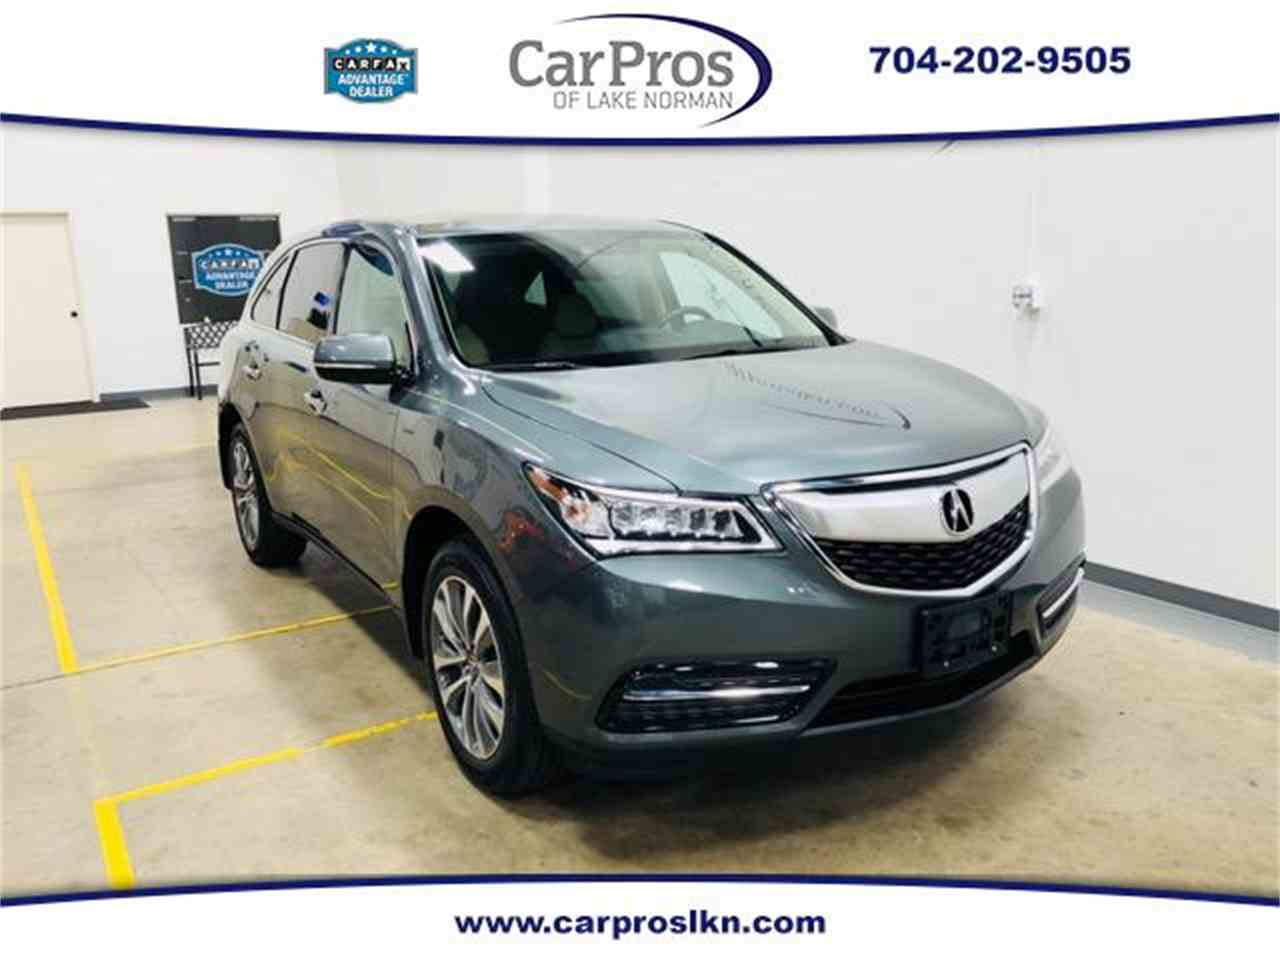 cargurus cars acura pic overview mdx price